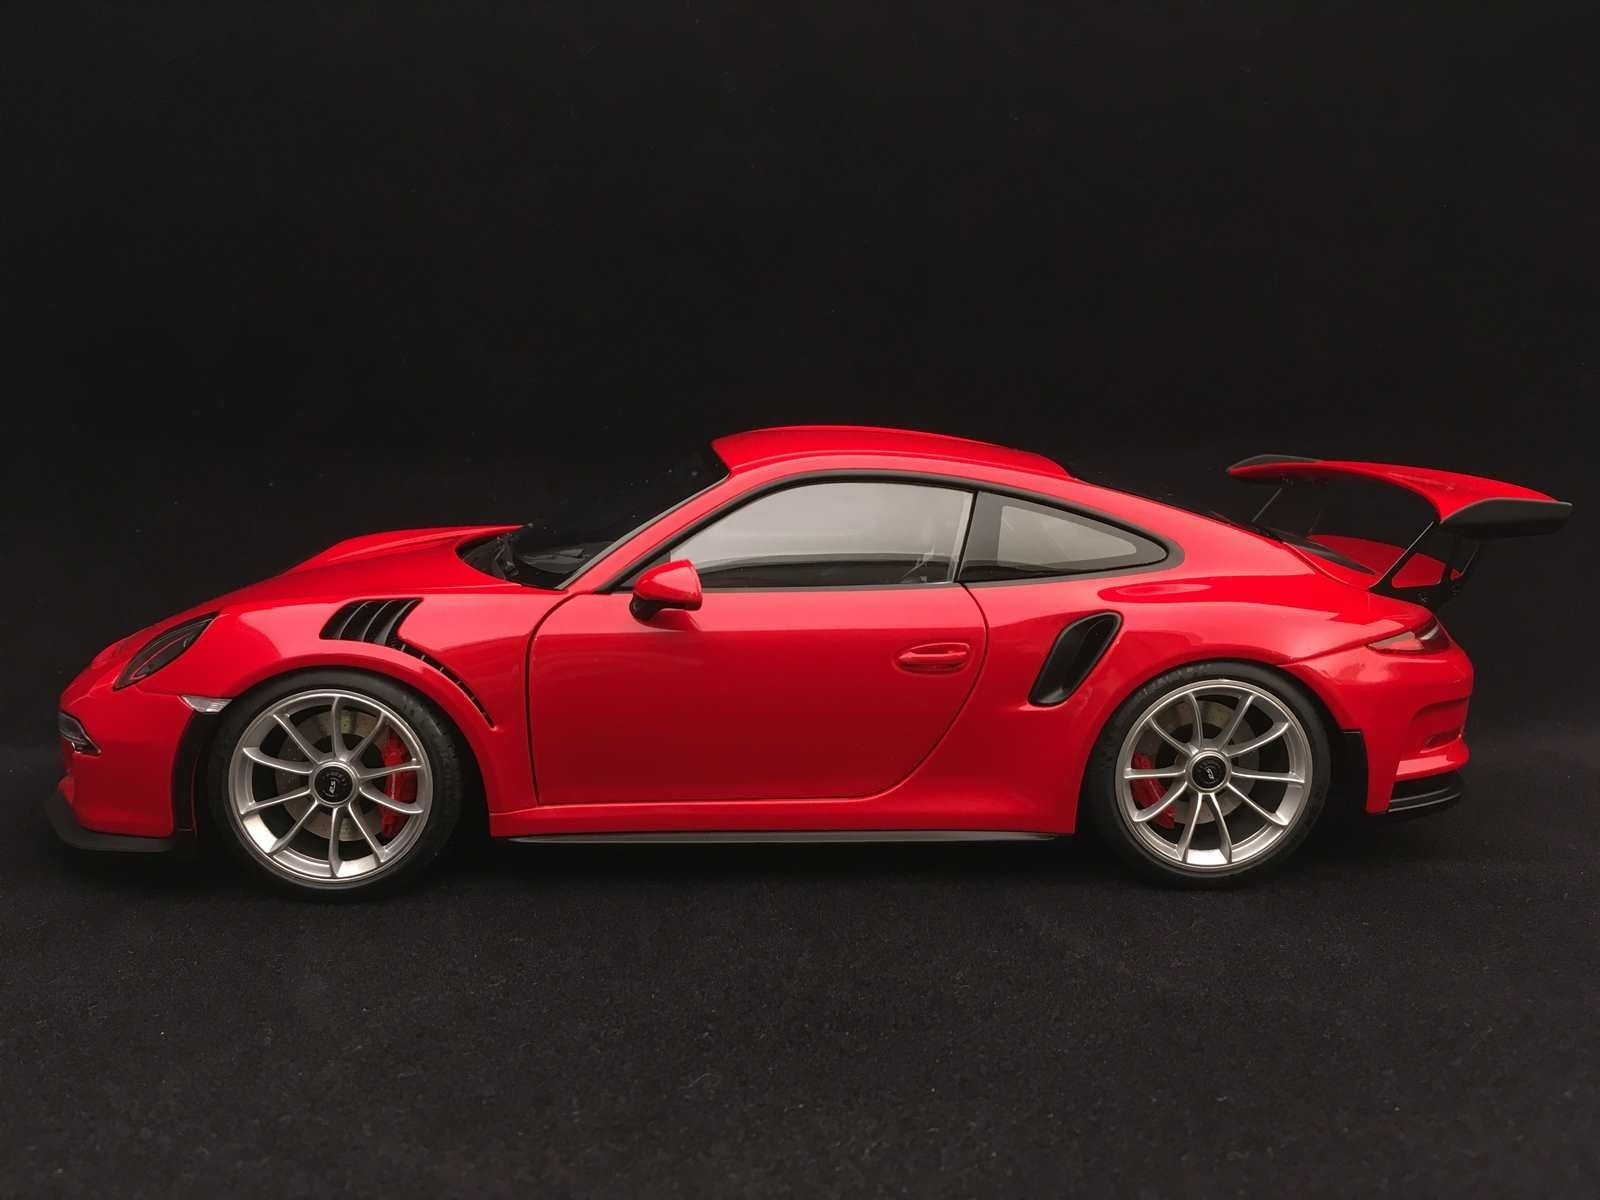 Porsche 911 Type 991 Gt3 Rs Guards Red 1 18 Autoart 78165 Selection Rs